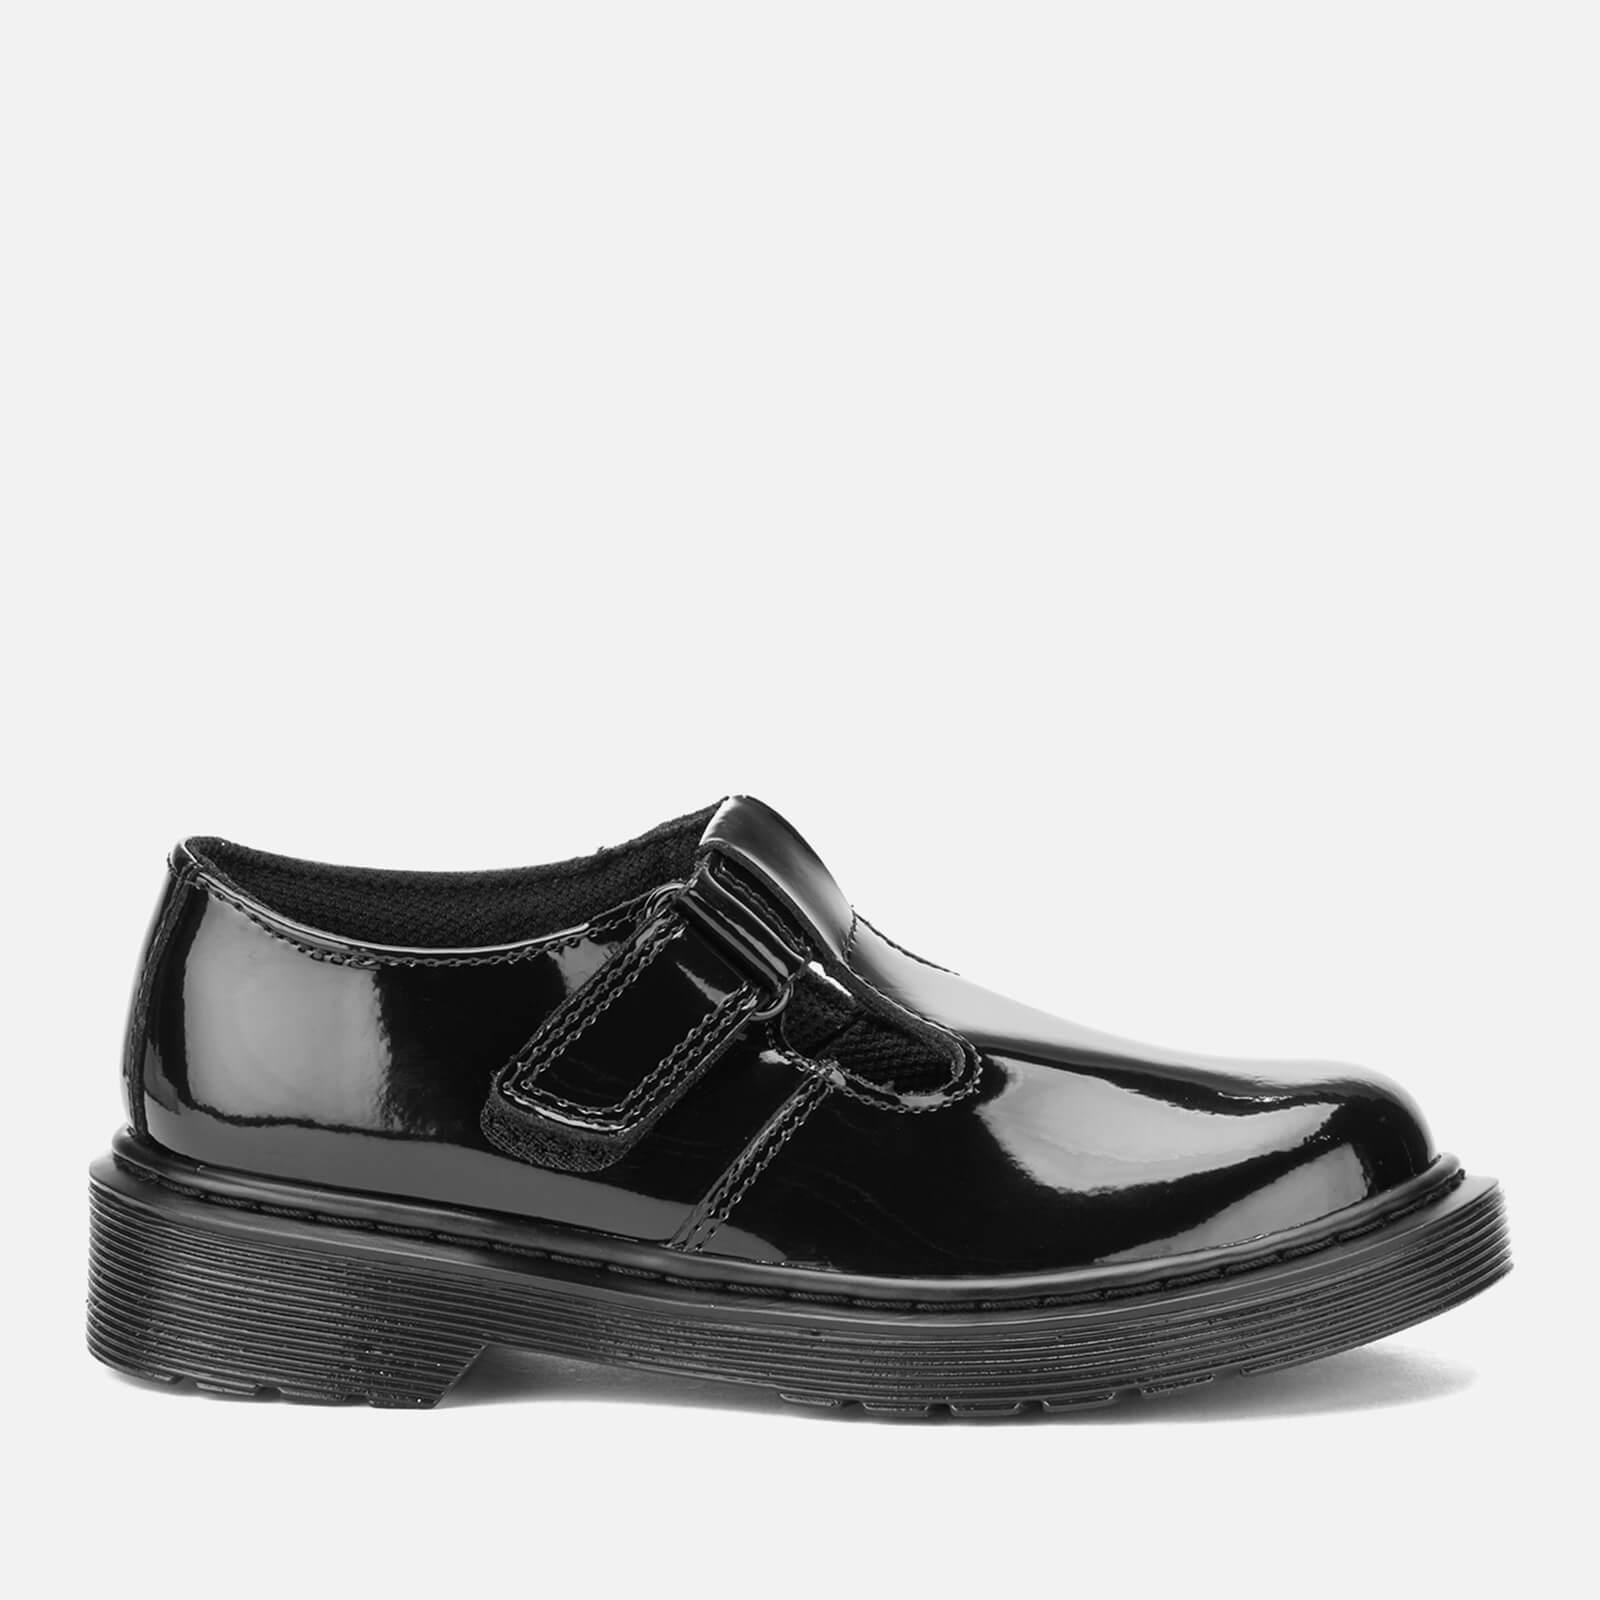 dd52f34cf1 Dr. Martens Kids' Goldie Patent Lamper Leather Mary Jane Shoes - Black